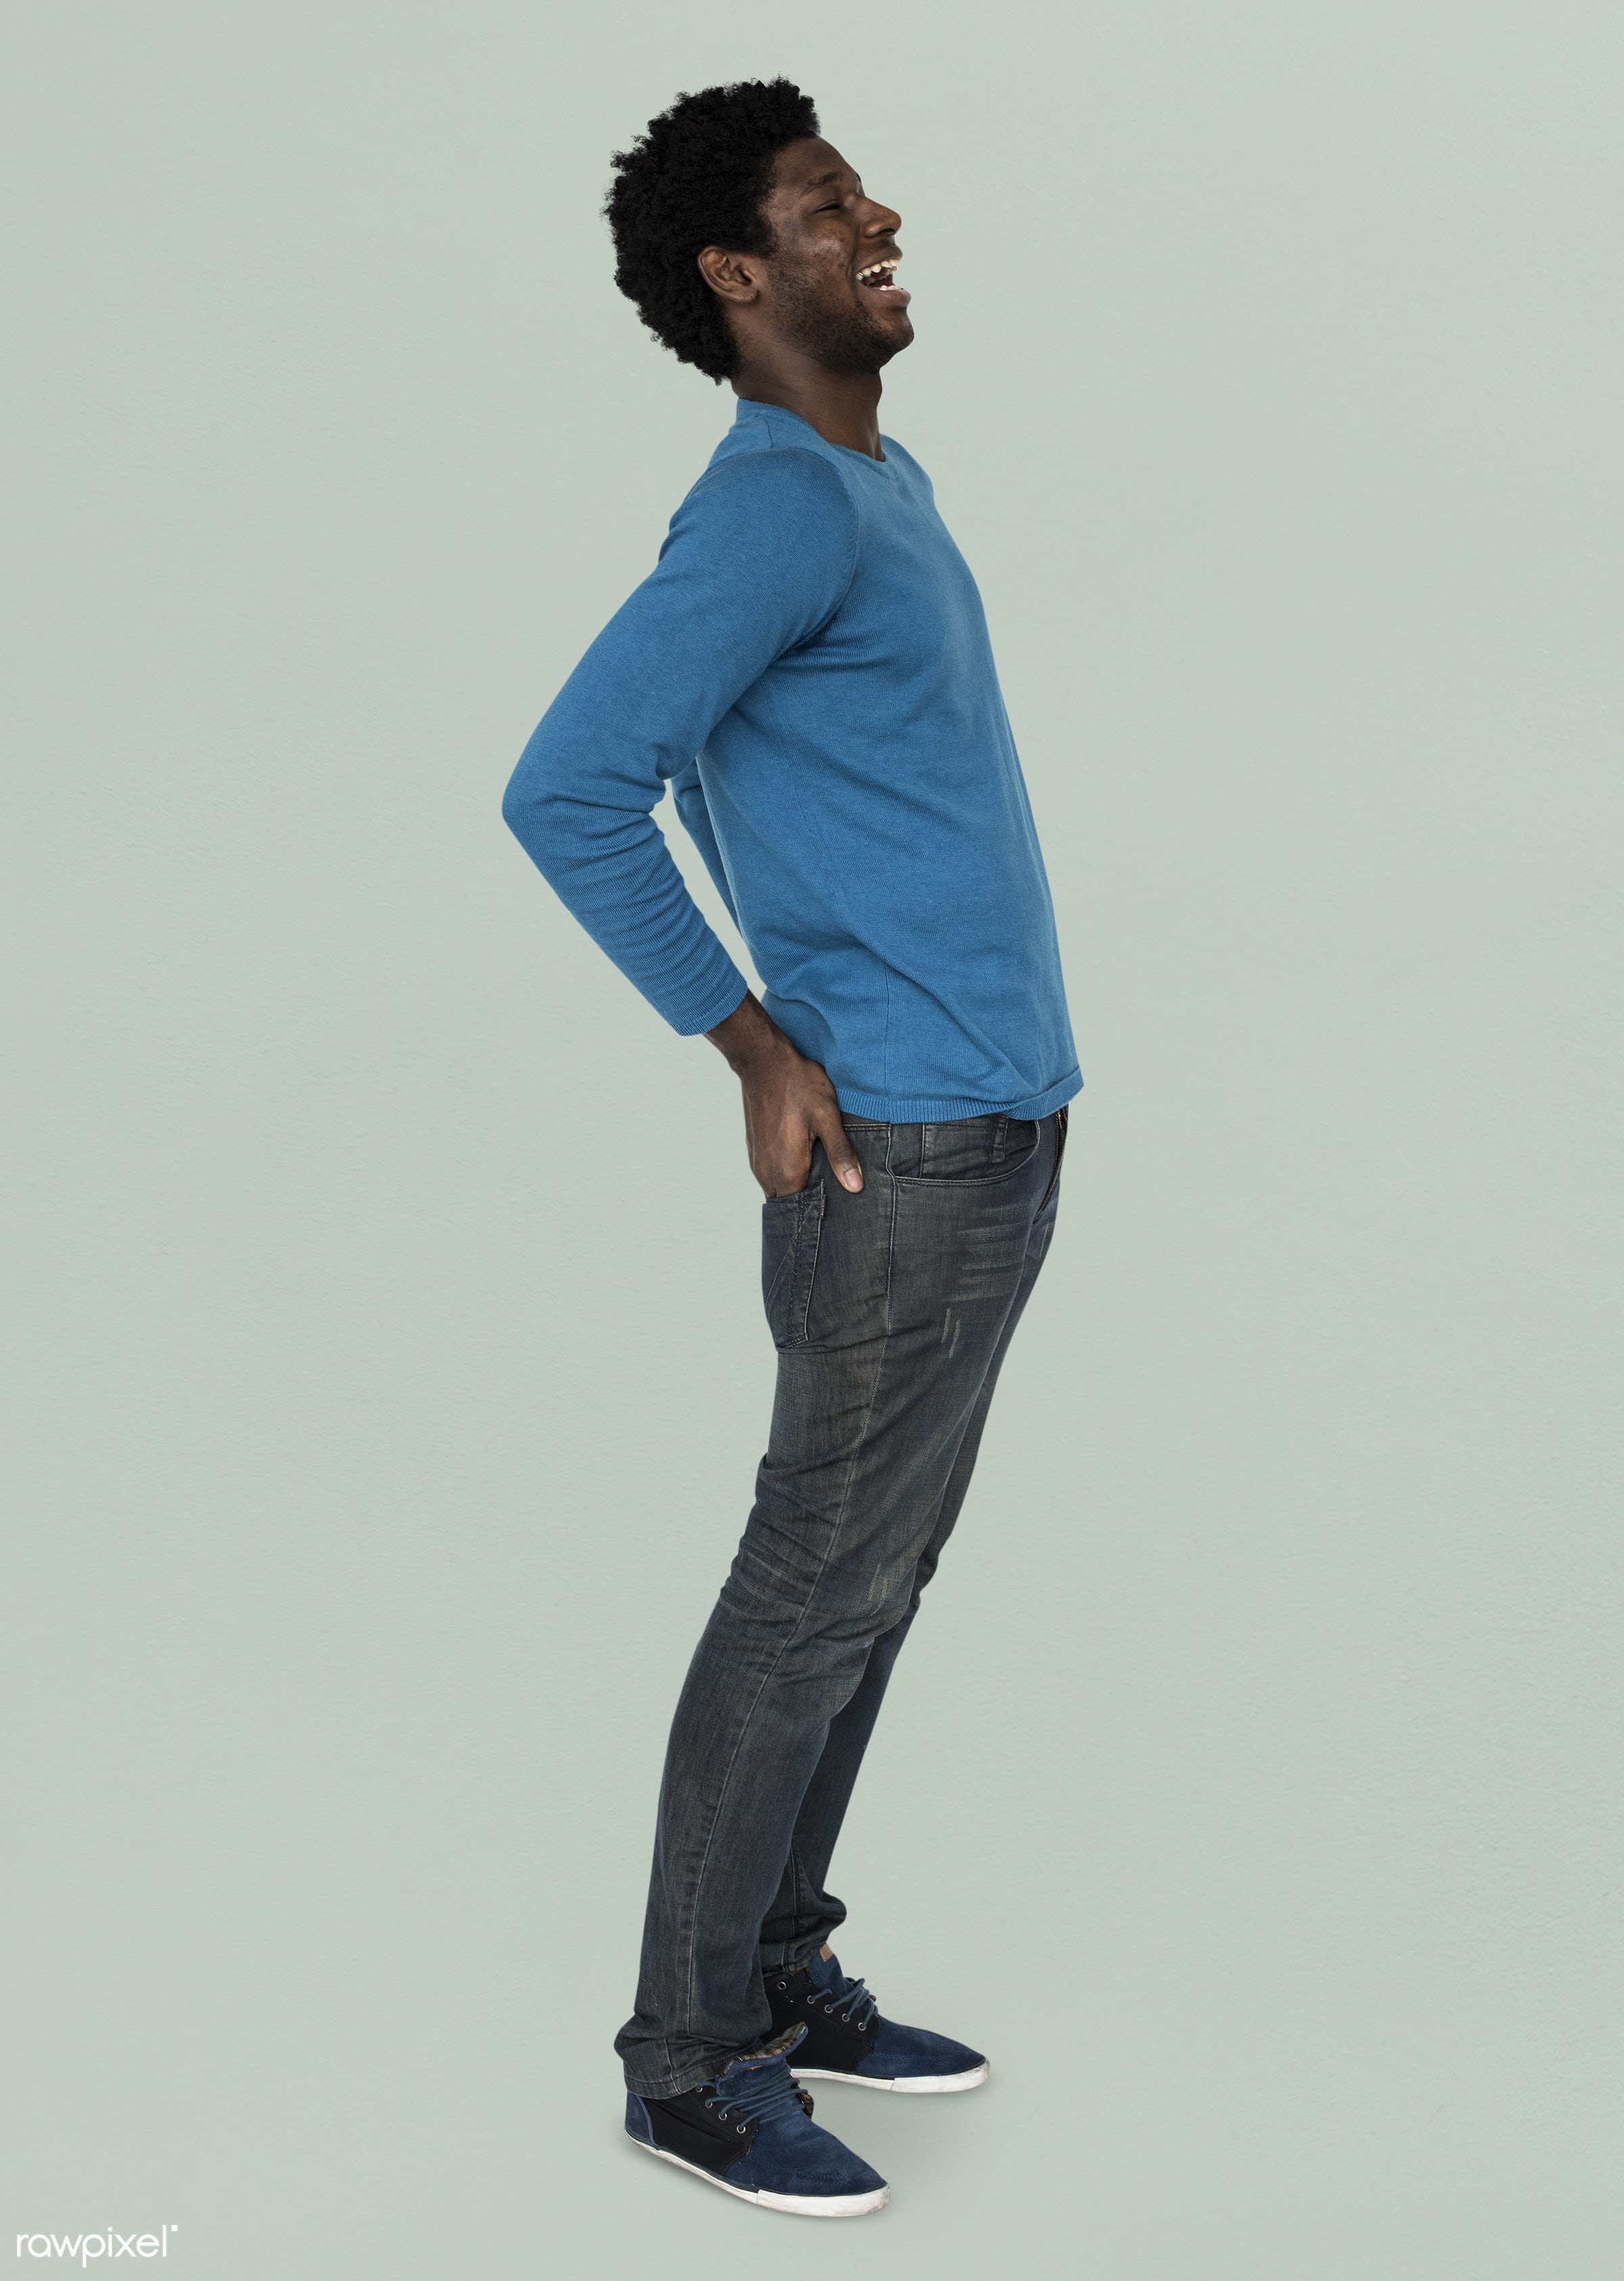 expression, studio, model, person, african ethnicity, freedom, full length, relax, optimistic, people, laughing, lifestyle,...